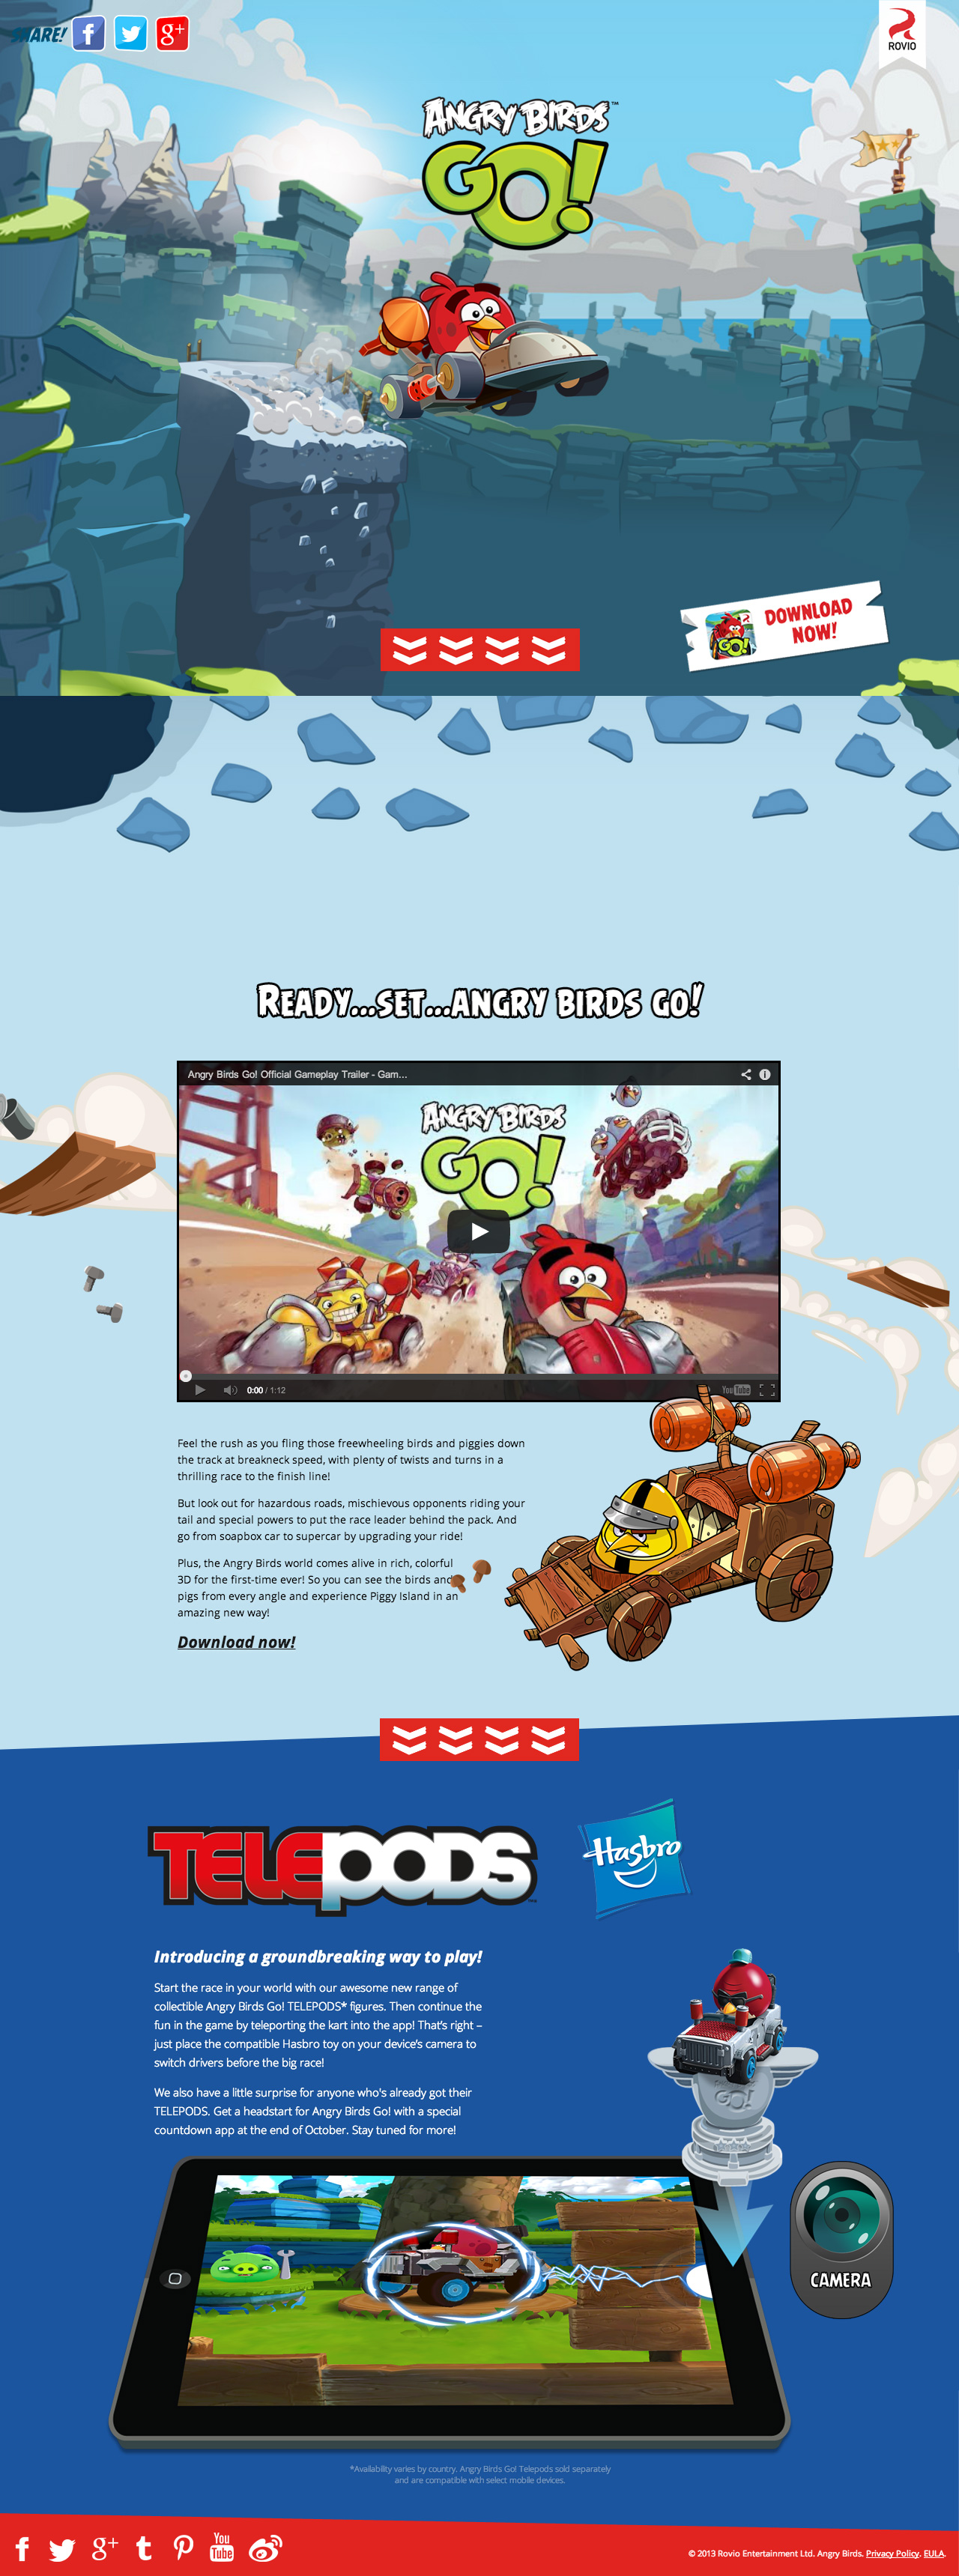 Angry Birds GO! Website Screenshot